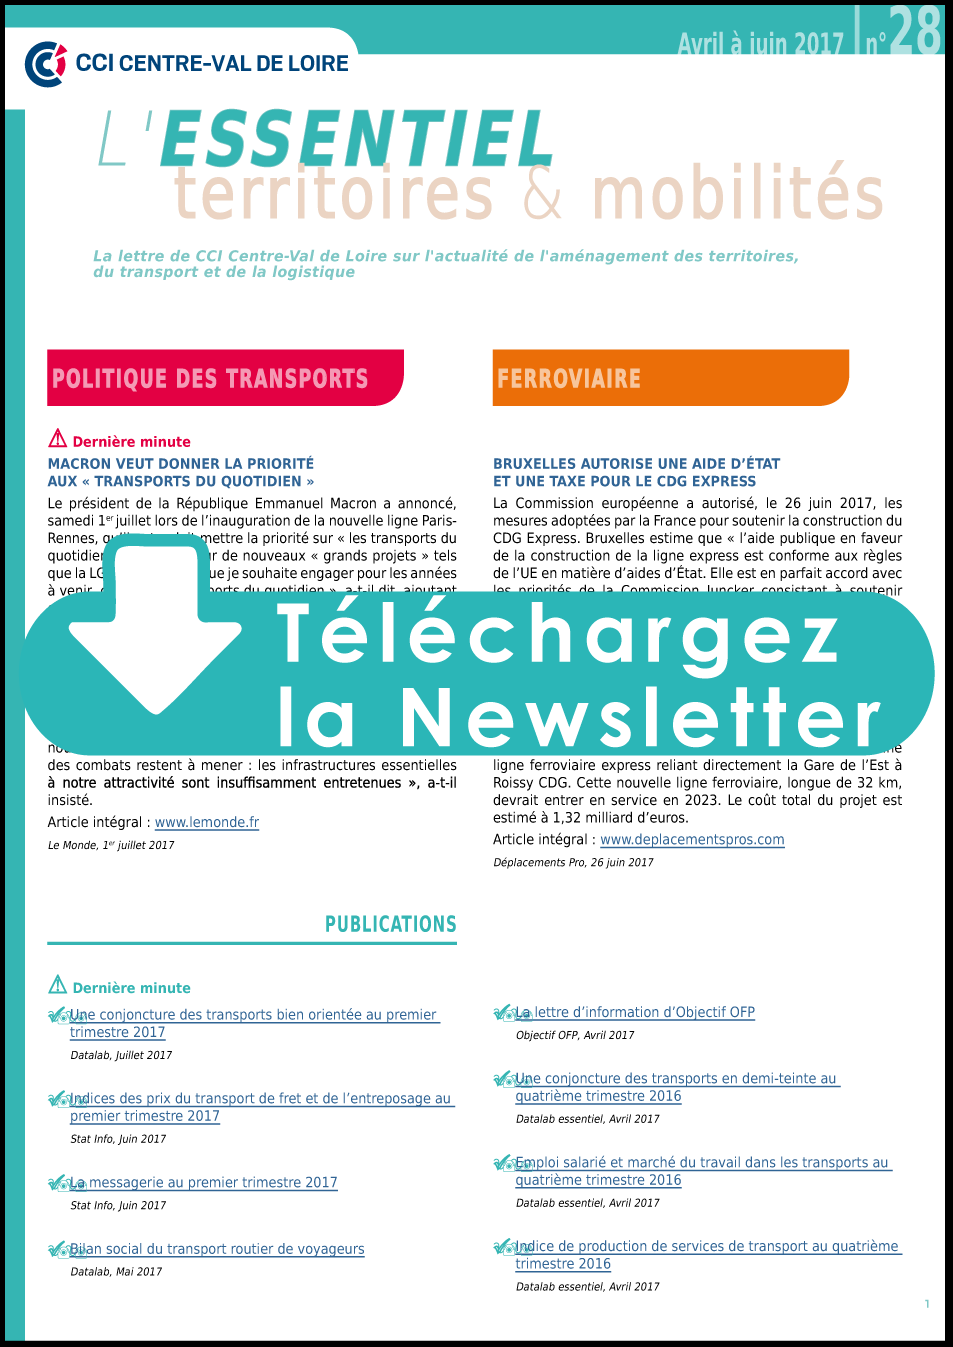 telechargez la newsletter